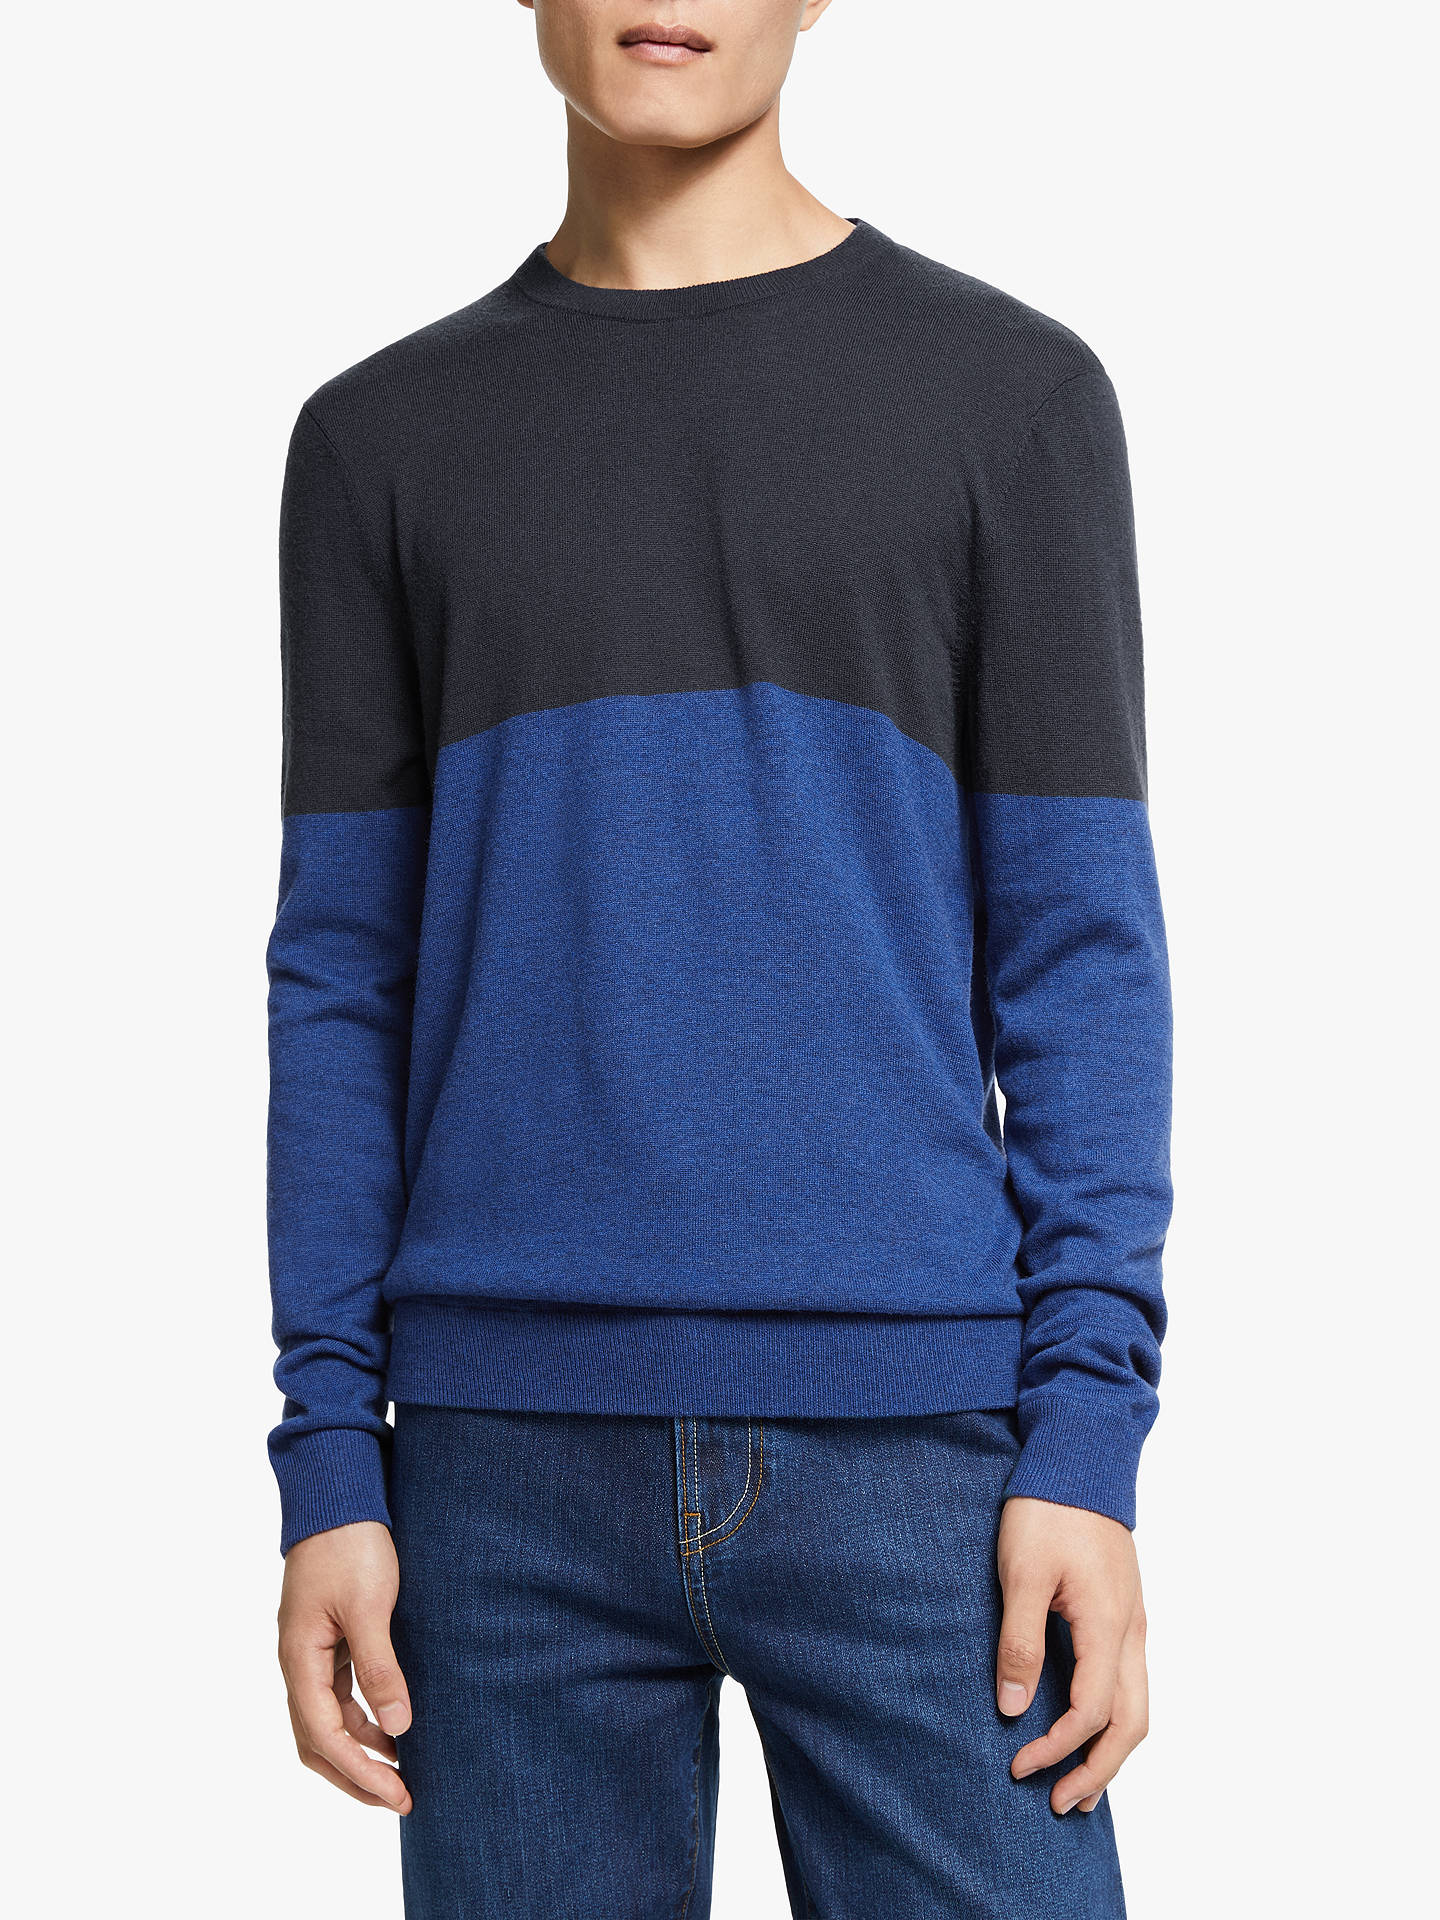 Buy Kin Merino Cashmere Colour Block Jumper, Blue, M Online at johnlewis.com